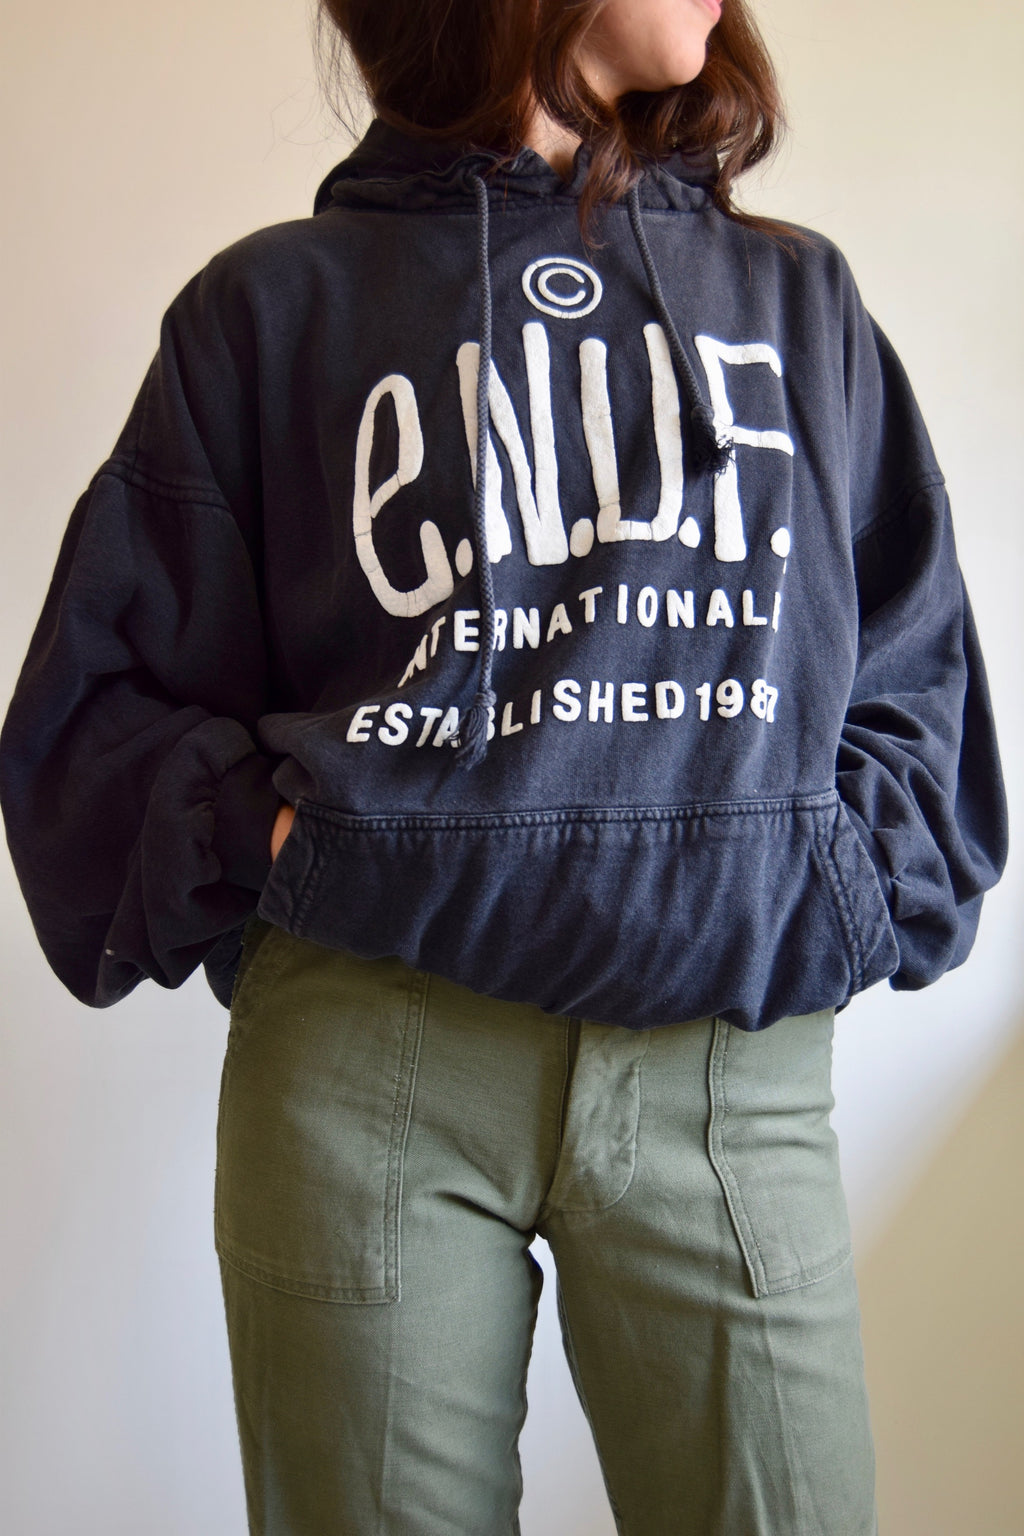 Vintage 90's E.N.U.F Internationale Hoodie